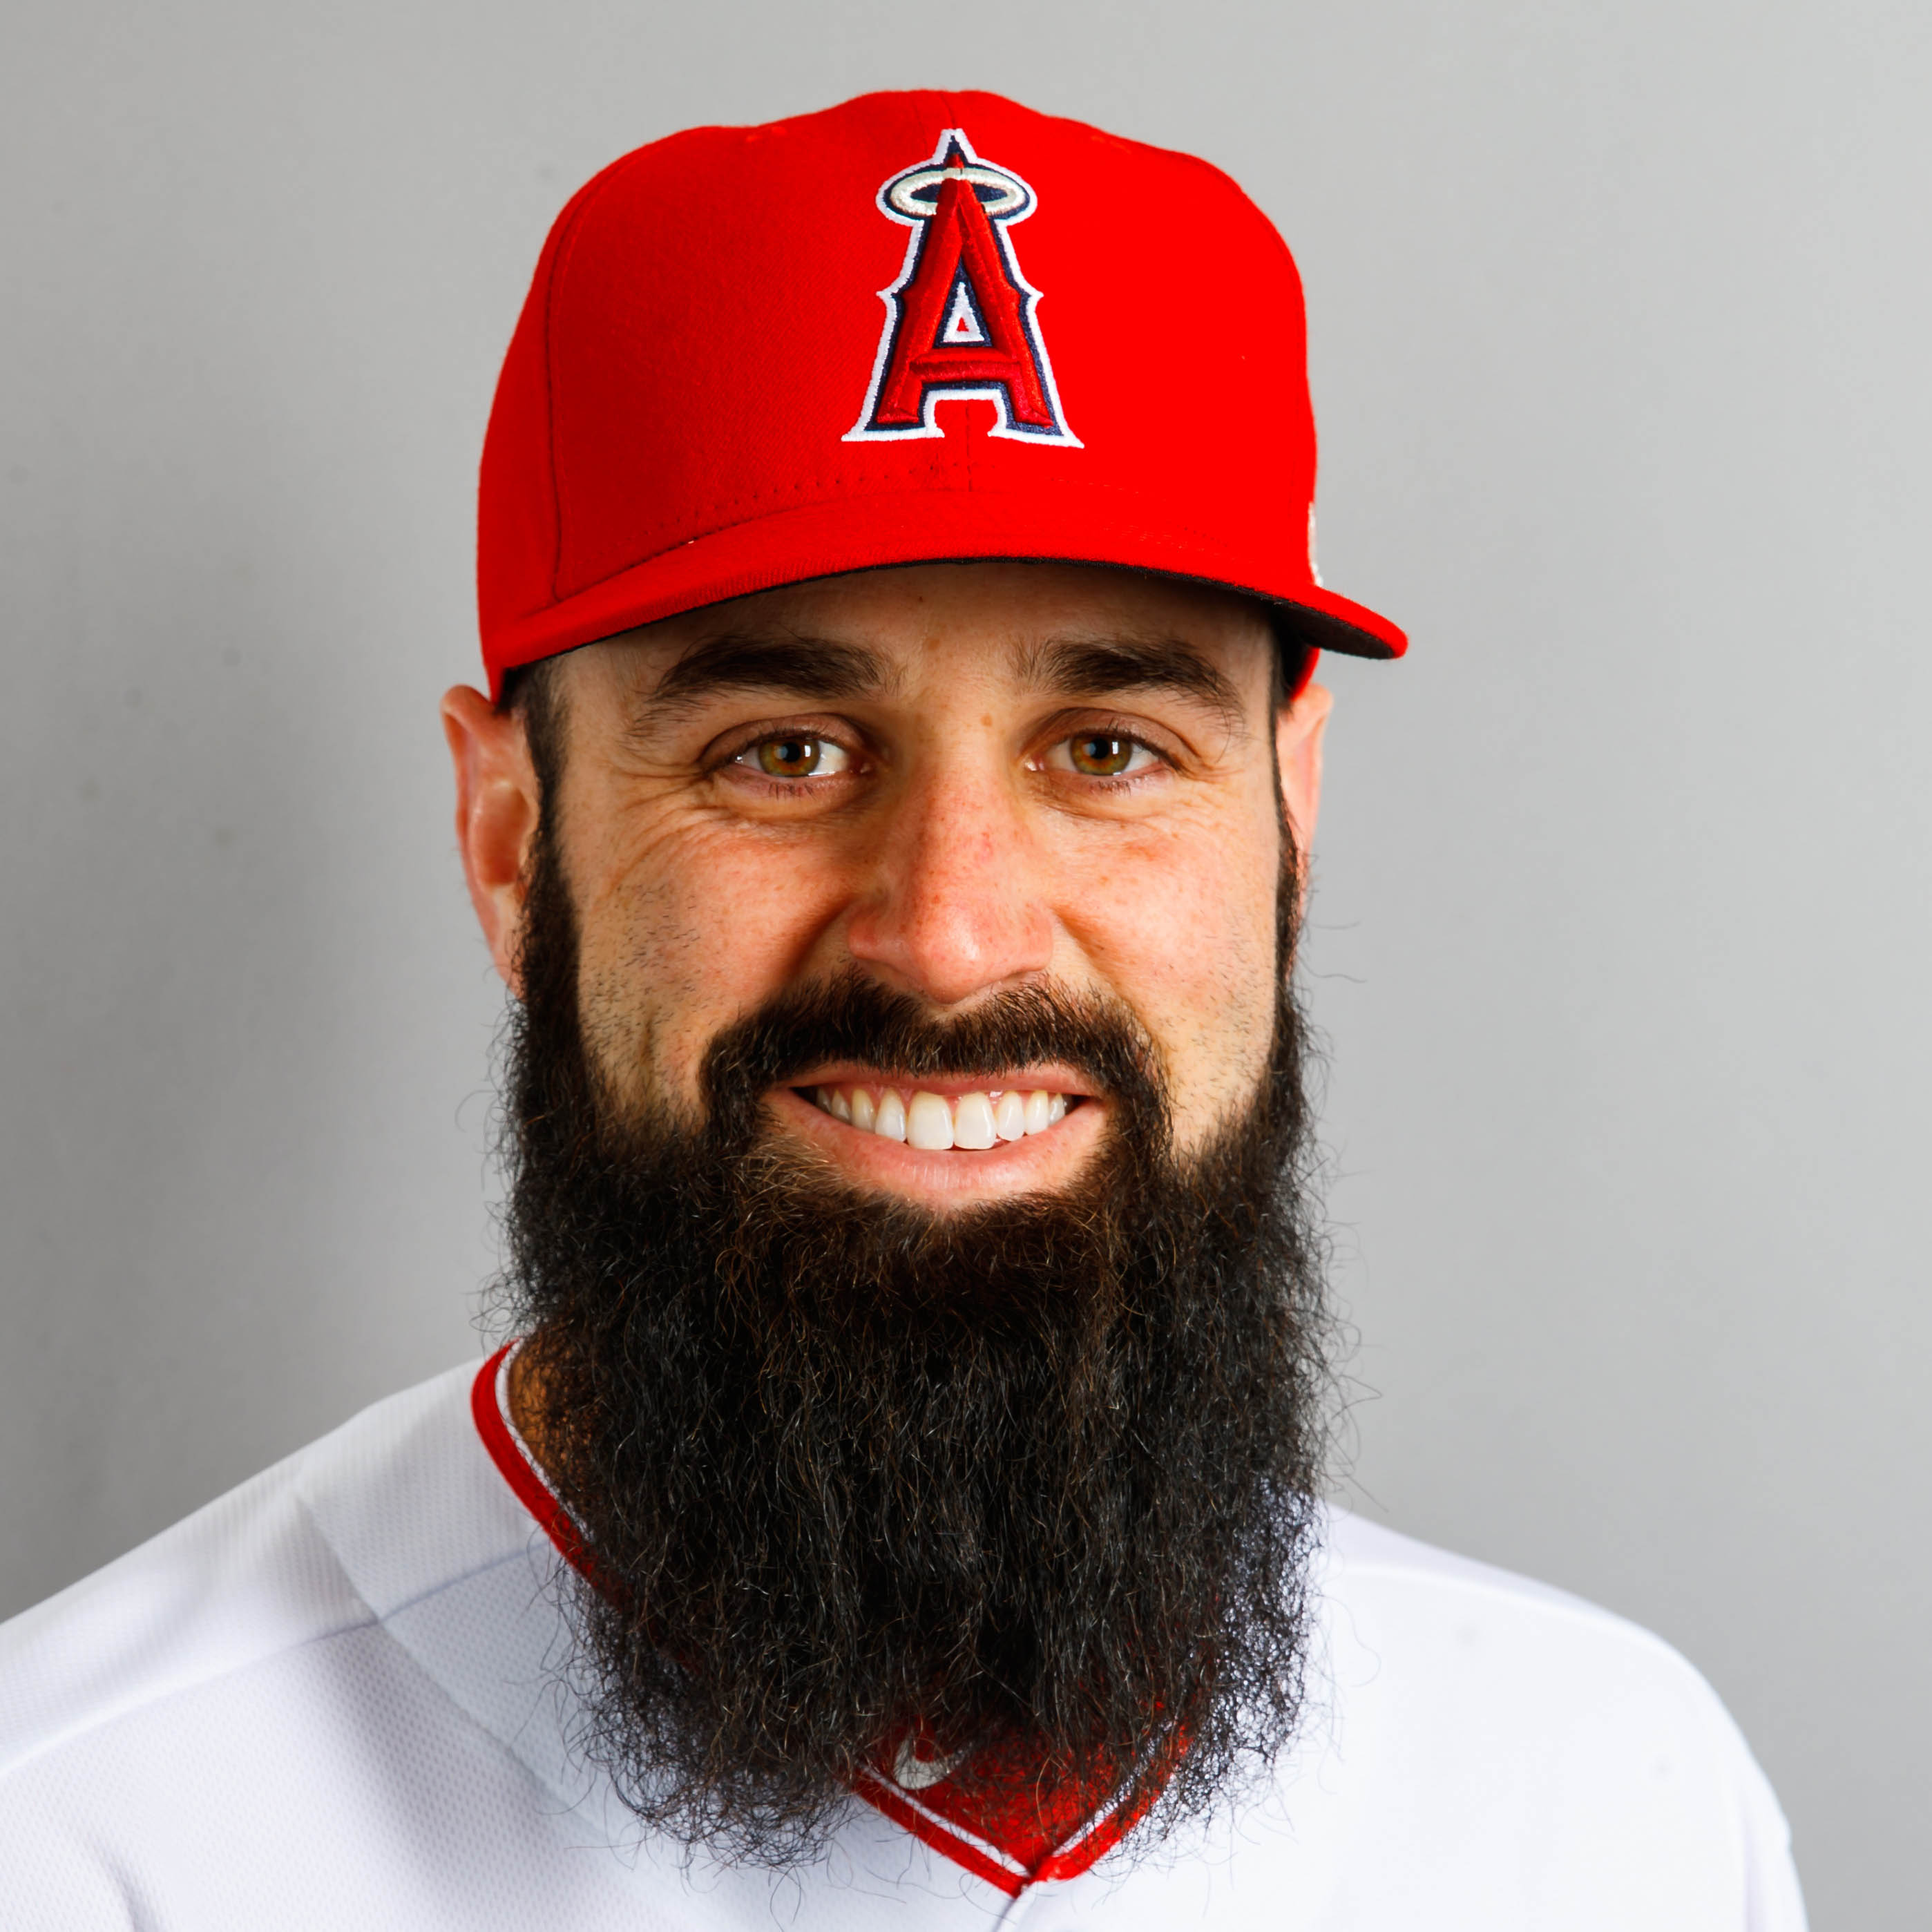 Matt Shoemaker (R) Headshot